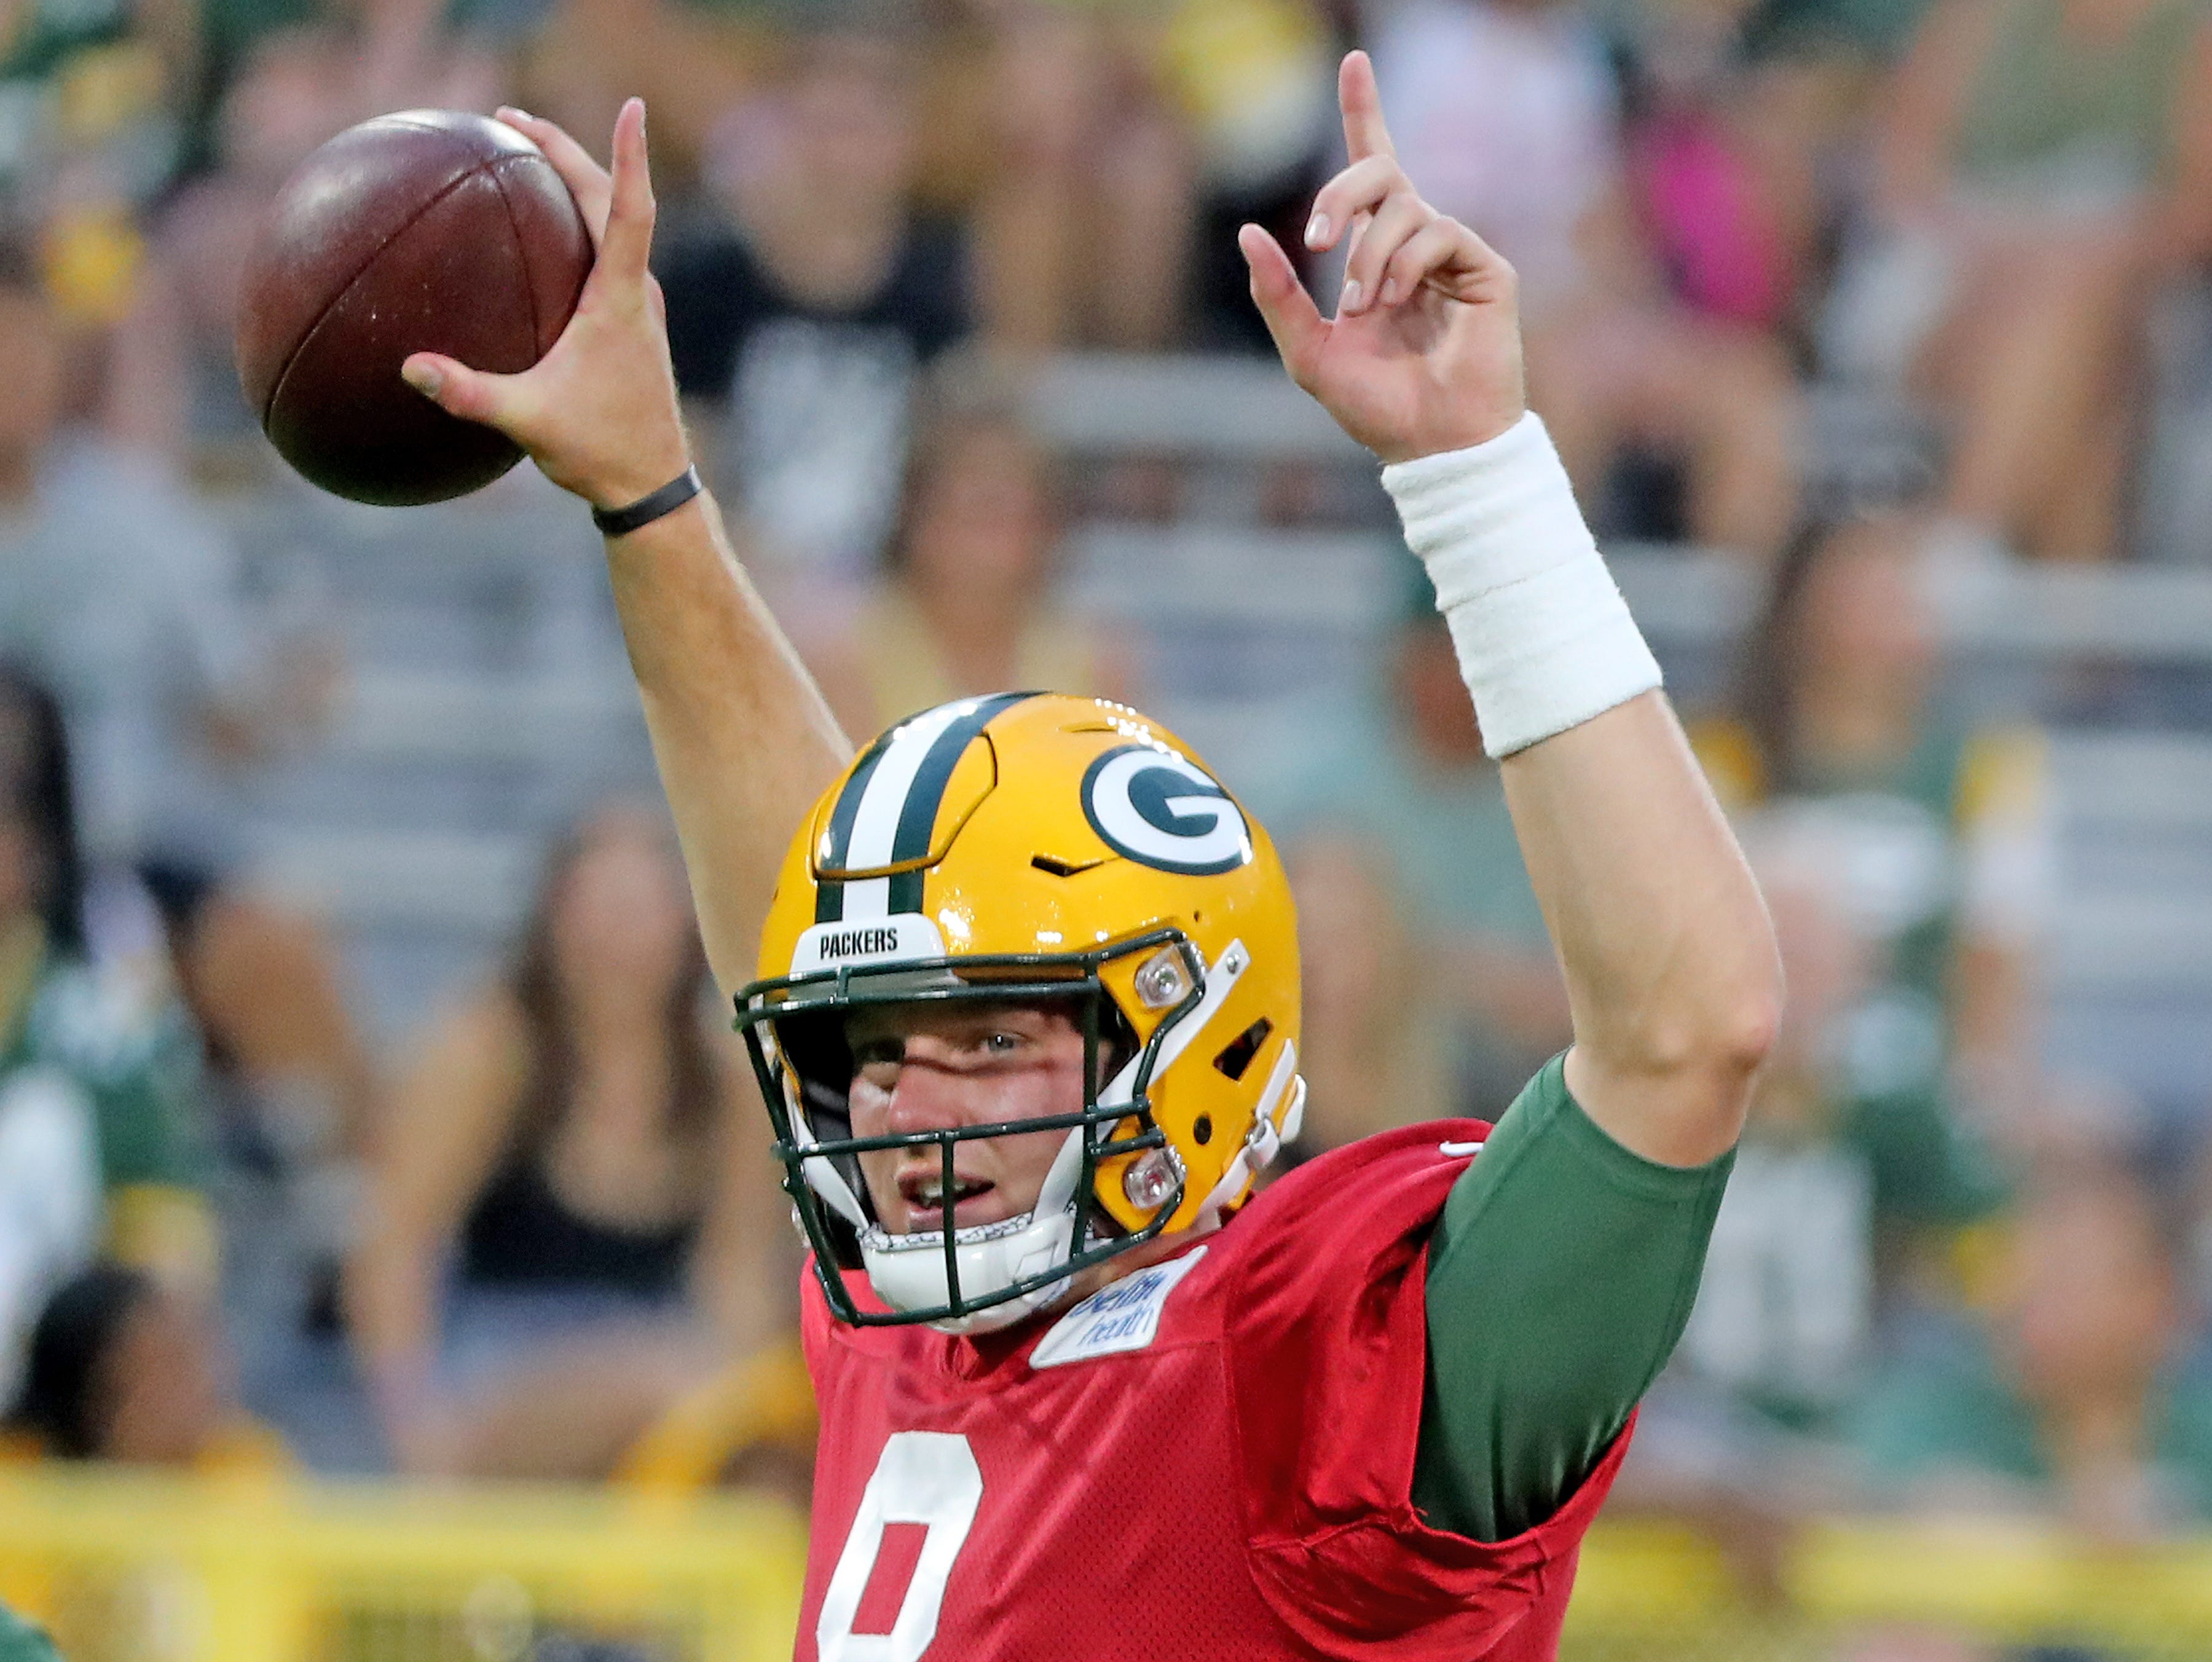 Green Bay Packers quarterback Tim Boyle (8) raises his arms in victory during a drill lduring Green Bay Packers Family Night  Saturday, August 4, 2018 at Lambeau Field in Green Bay, Wis.,